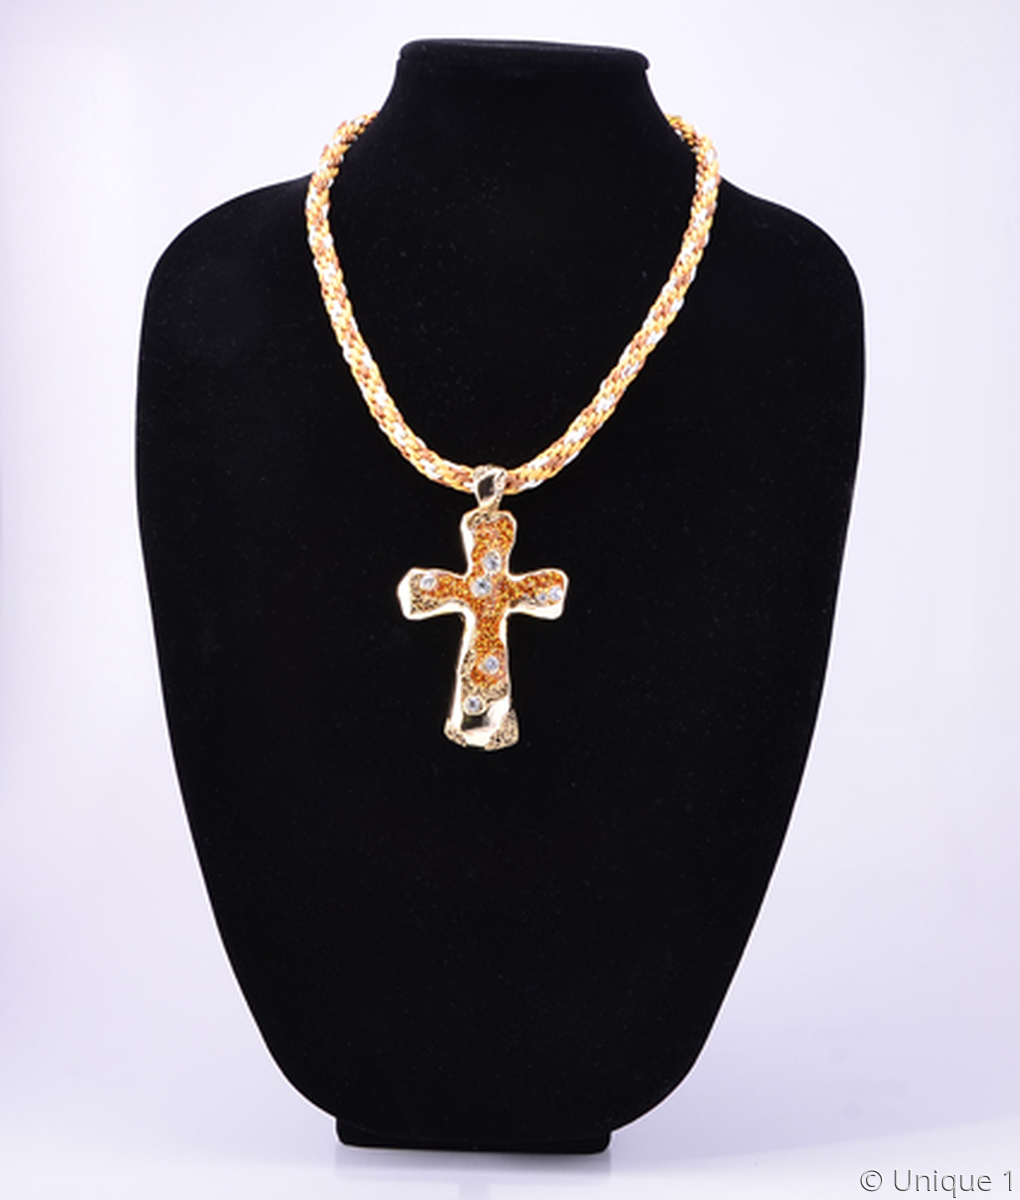 Golden Cross Necklace and Earrings (large view)